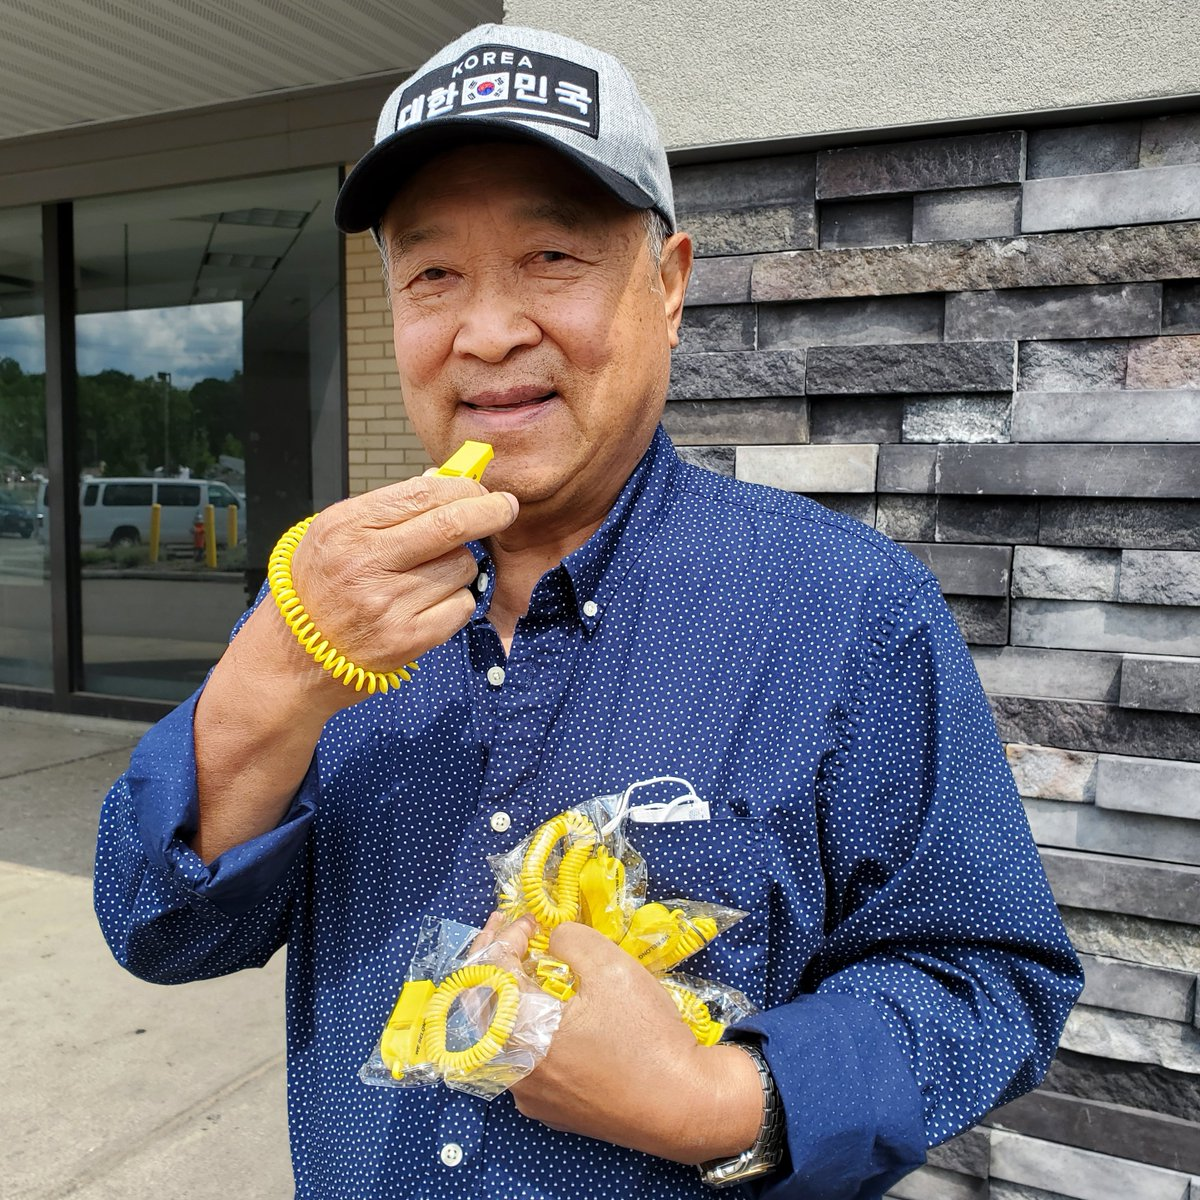 Yesterday we distributed 300+ @yellow_whistle to the Korean Senior Citizens Association and a Korean church in Northeast Ohio.   #StopAsianHate #ProtectOurElders #TheYellowWhistle #WeBelong   #SeeUsUnite https://t.co/Wq33uckpCX